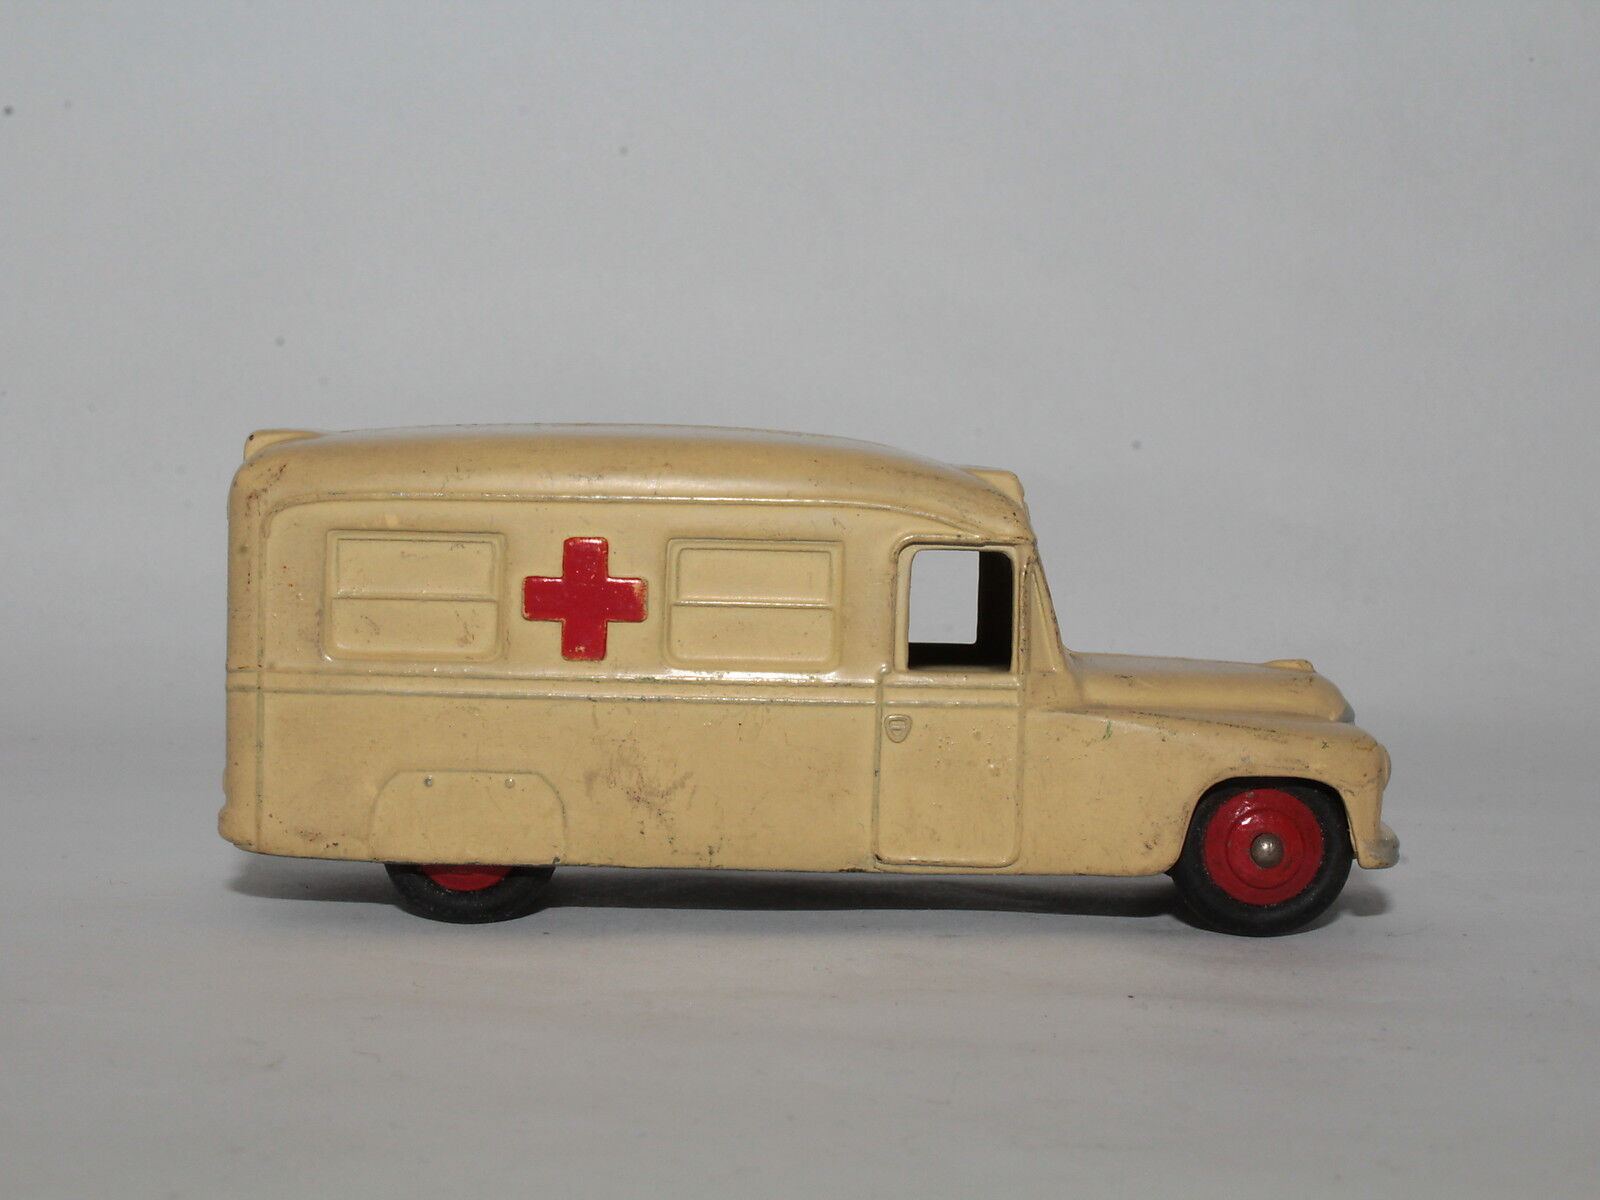 DINKY TOYS No. 253 DAIMLER AMBULANZA AMBULANZA AMBULANZA MECCANO LTD. - NO BOX [OR3-61] 2d9414